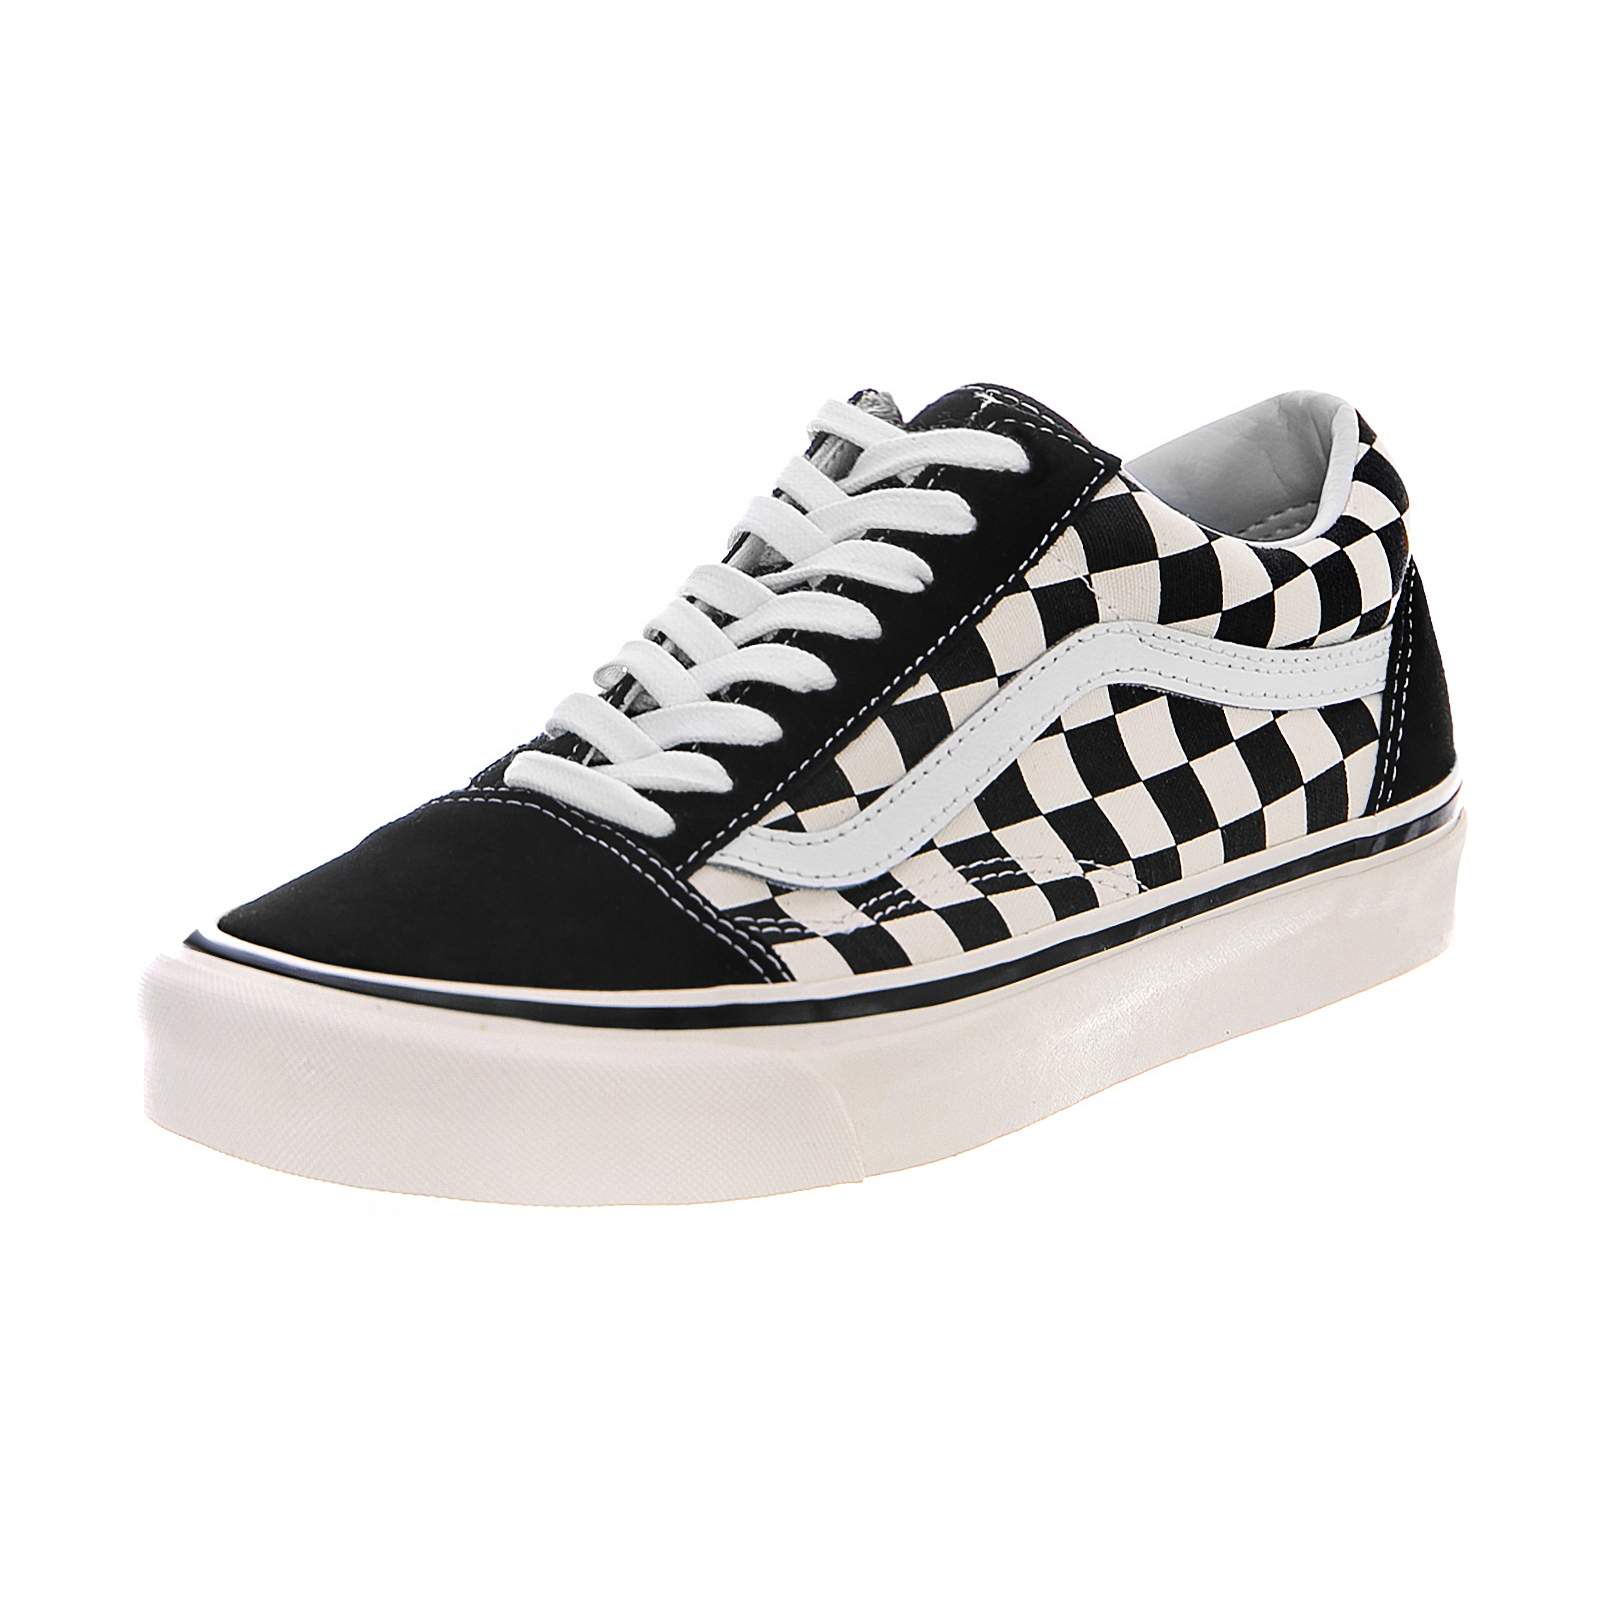 bb605ca9d121 Vans Sneakers Unisex Old Skool 36 DX (Anaheim Factory) Black ...